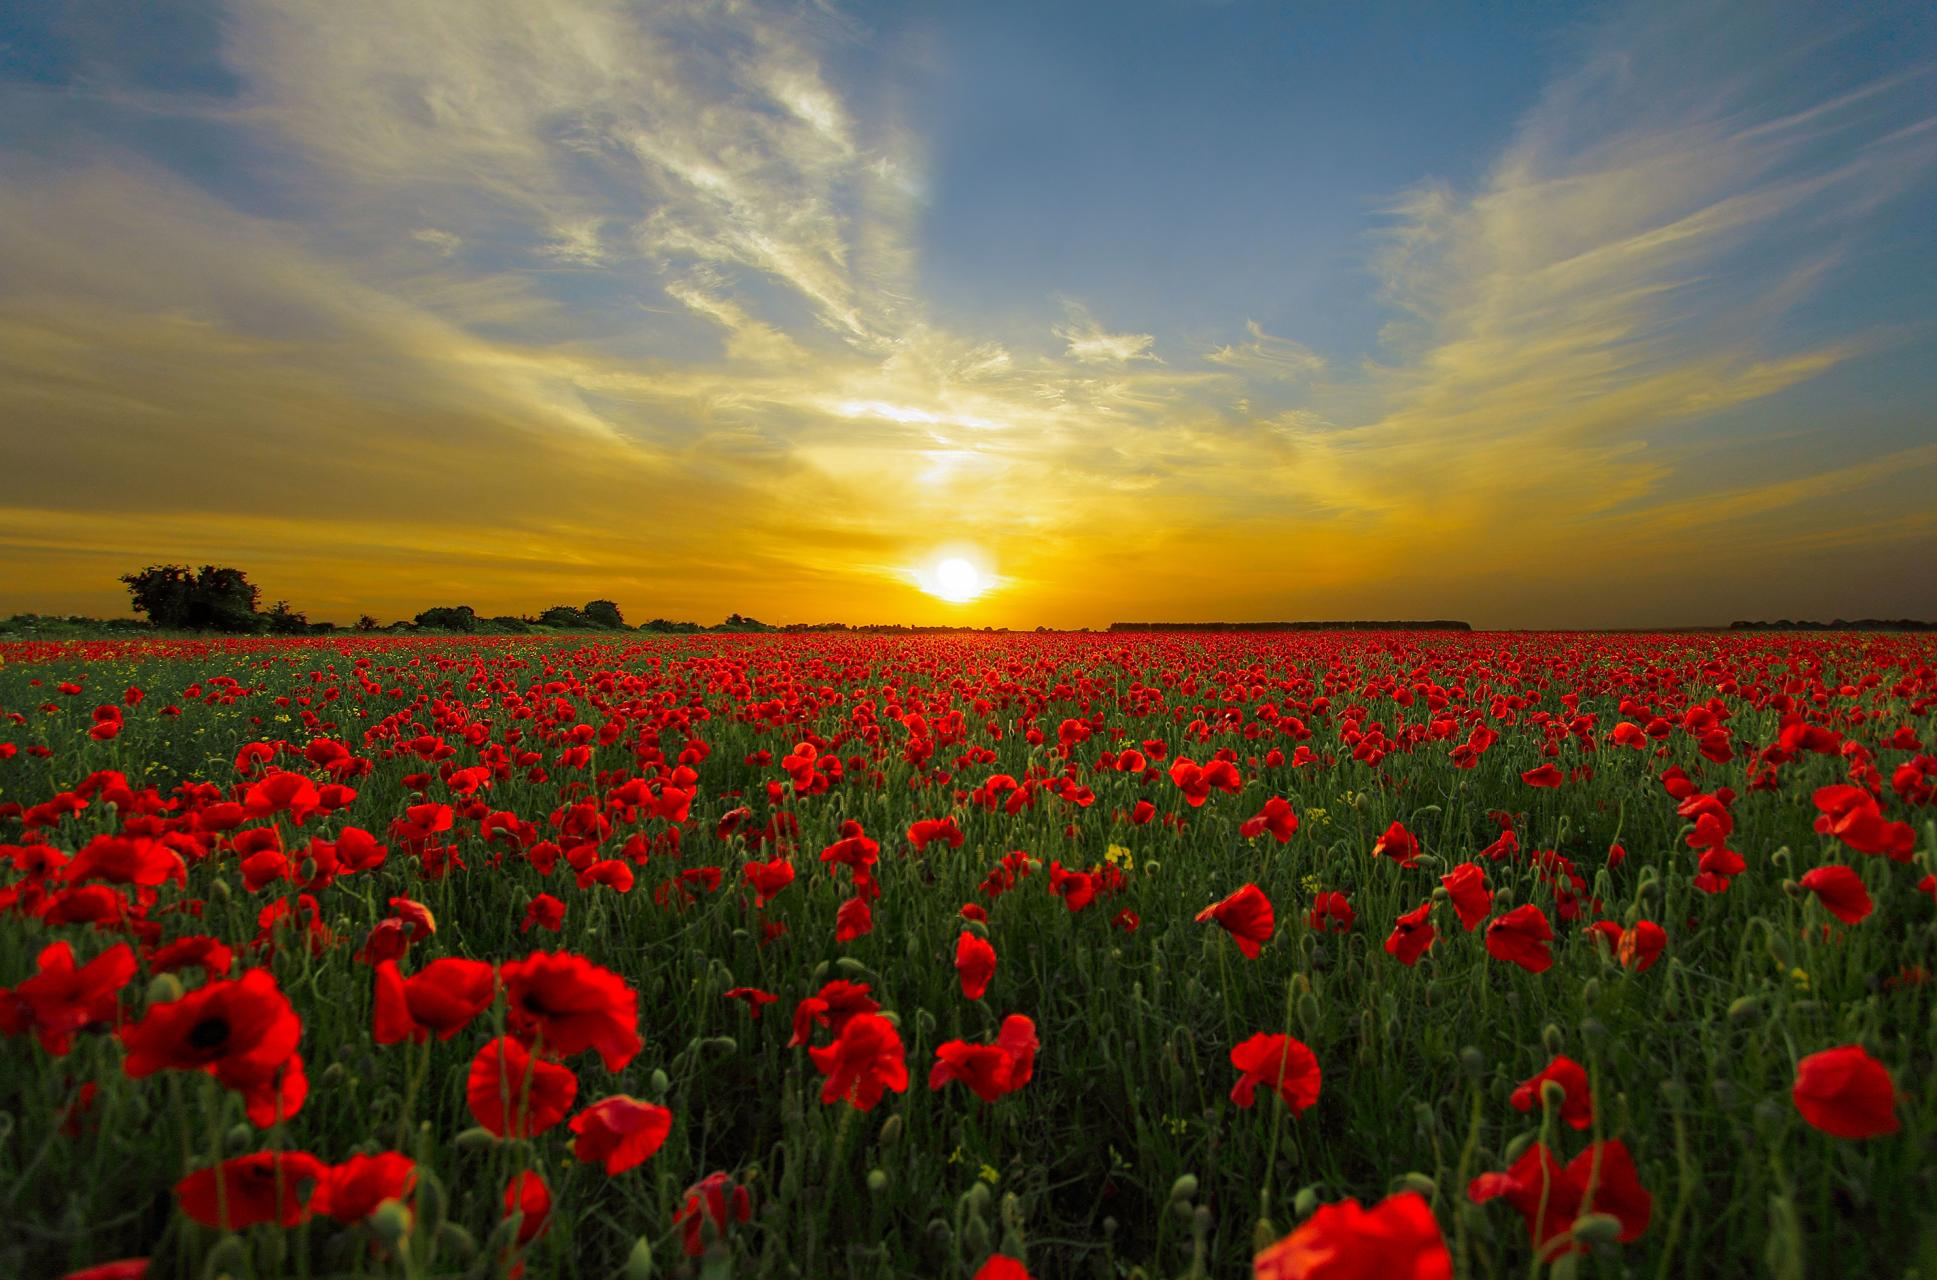 Poppies in a field, image featured in our exhibit,